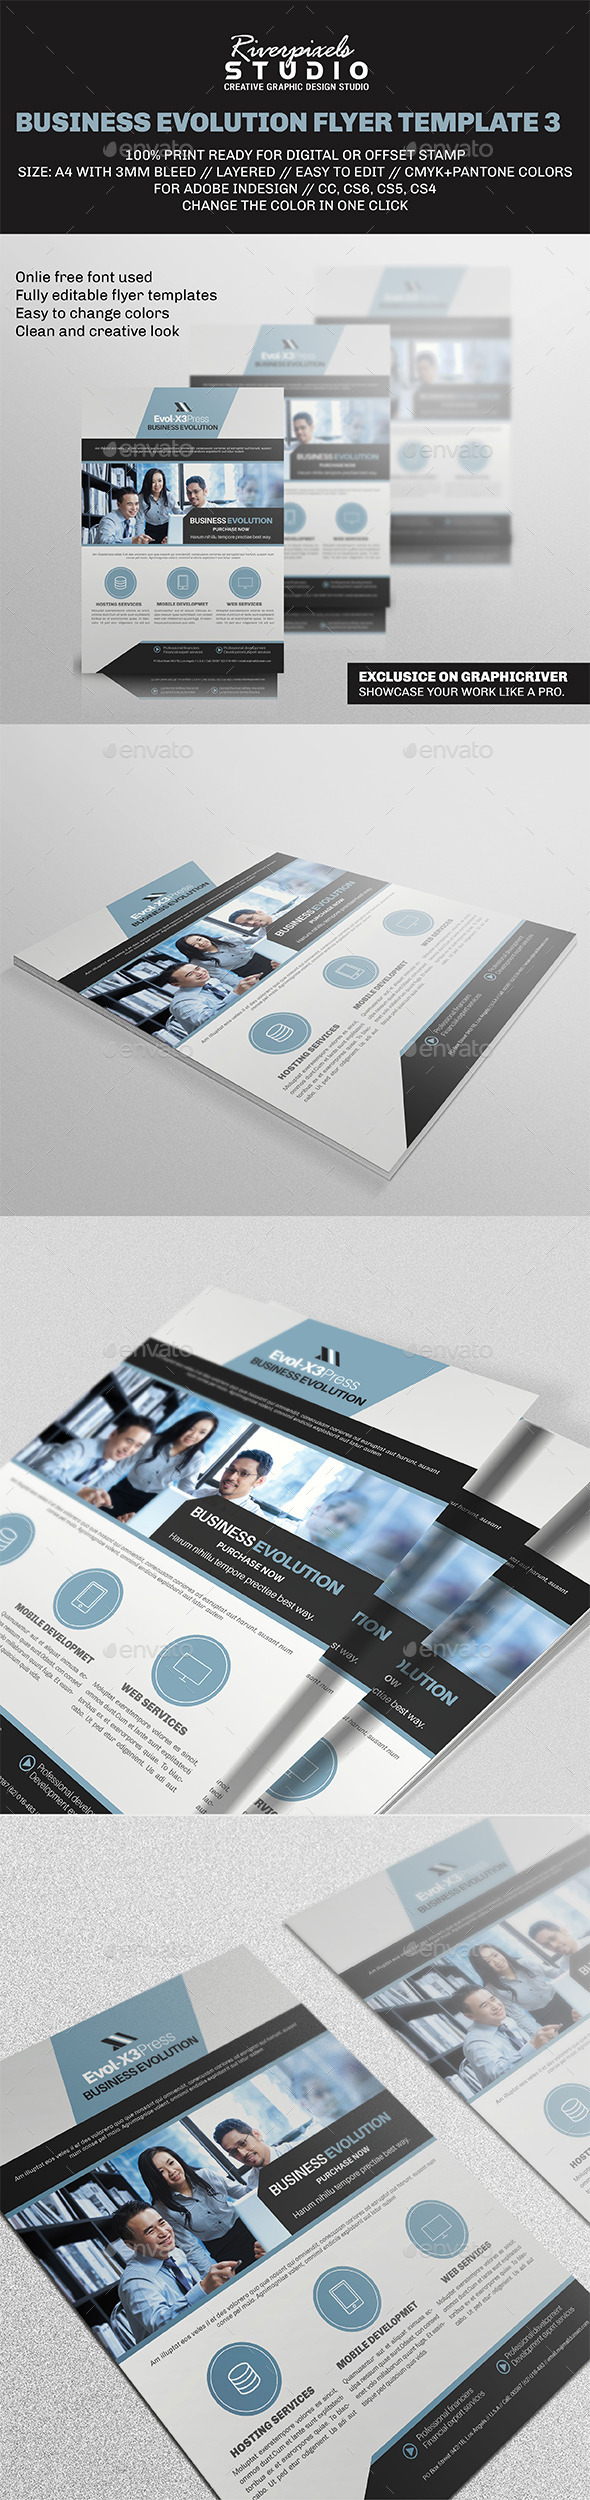 Business Evolution Flyer Template III - Corporate Flyers